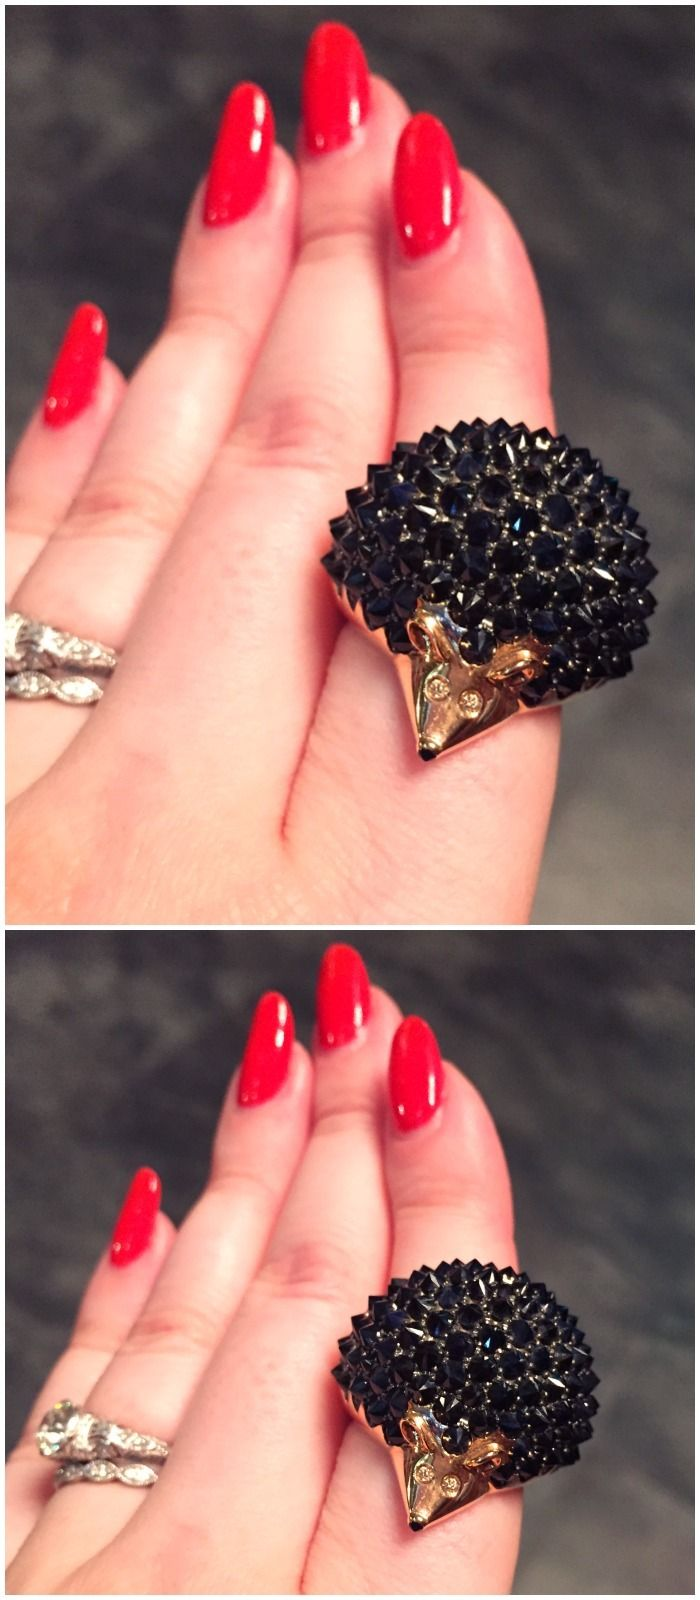 I'm pretty in love wit this hedgehog ring from Roberto Coin.